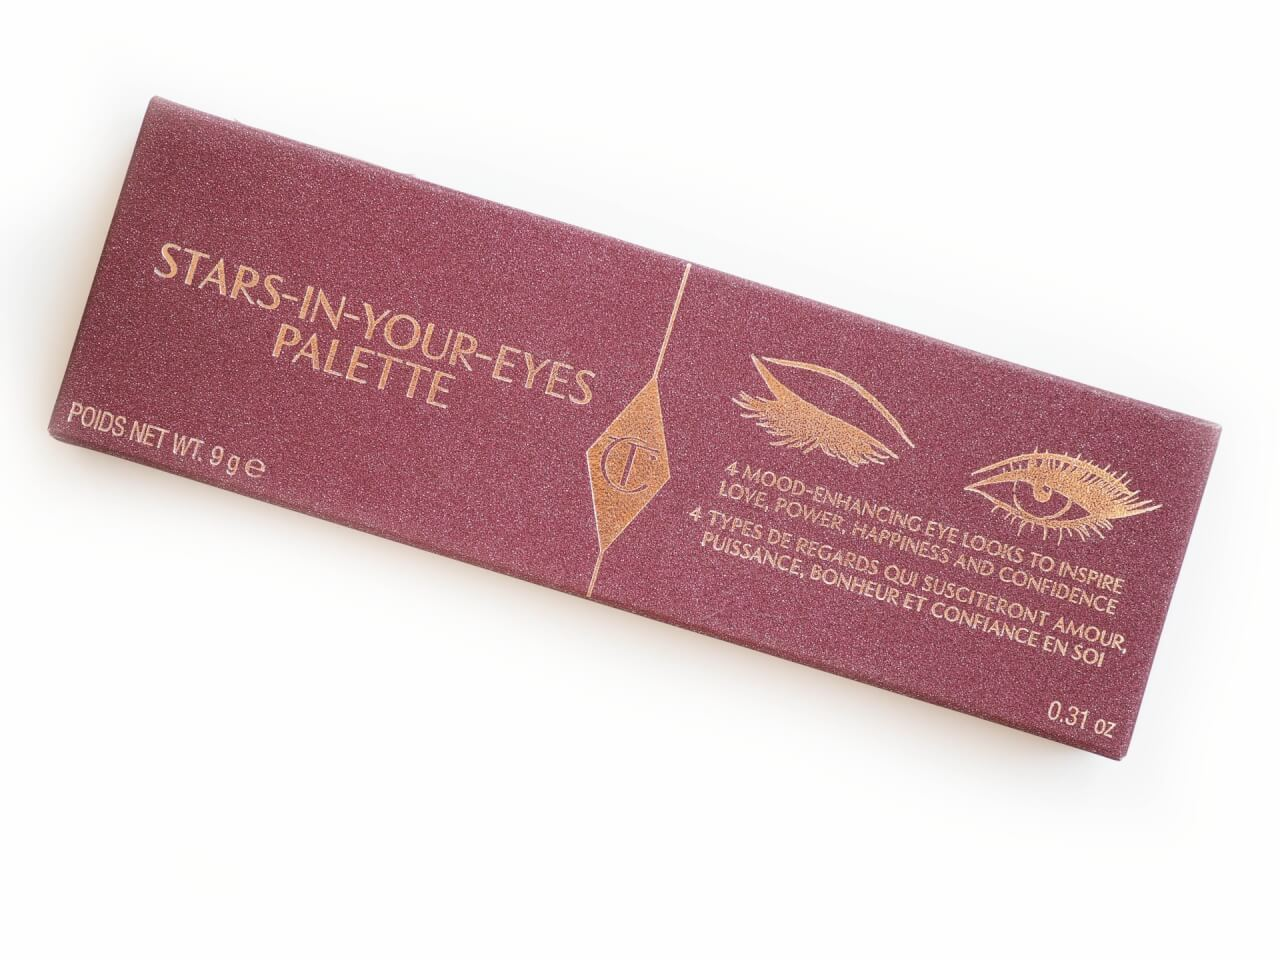 Charlotte Tilbury Stars In Your Eyes Instant Eyes Palette